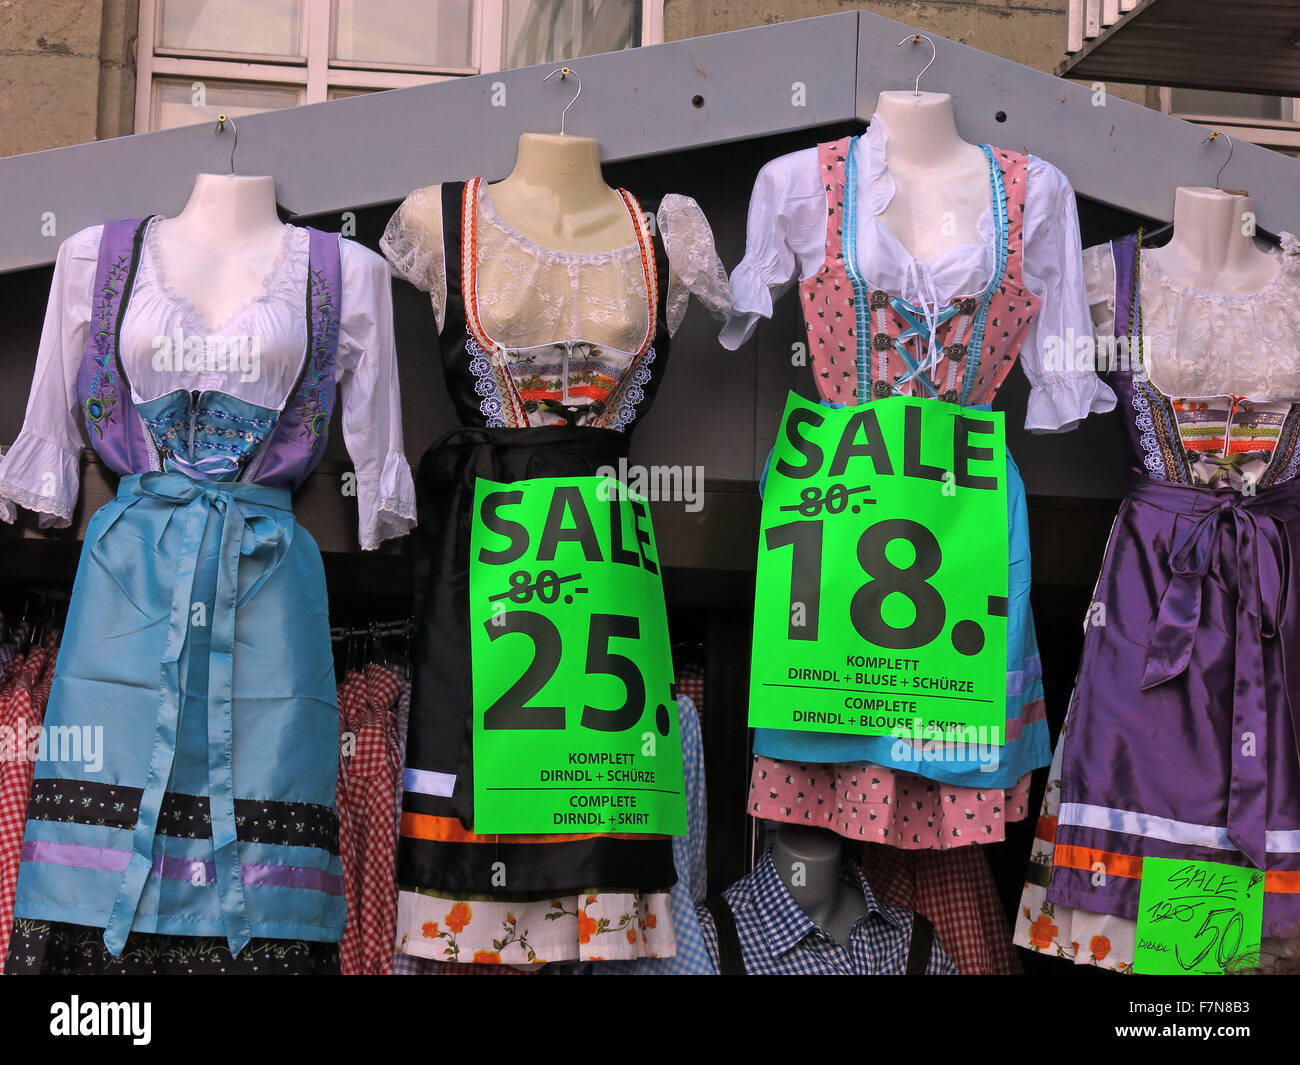 sale,prices,for,sale,reduced,Octoberfest,beer,bier,festival,railway,station,gear,Hbf,central,stall,market,price,prices,Bavarian,lederhosen,hat,tourist,tourists,Dirndl,leather,Bundhosen,Kniebundhosen,traditional,clothing,clothes,Alpine,dress,skirt,cheap,euro,euros,dummy,showroom,For Sale,GoTonySmith,Munich,Oktoberfest,in,Germany,Volksfest,beer,festival,and,travelling,funfair,Bavaria,event,Wiesn,fairgrounds,Octoberfest,October,Autumn,Theresienwiese,field,or,meadow,of,Therese,centre,beer,center,bier,roast,pork,chicken,building,buildings,Brezen,pretzels,Knödel,potato,bread,dumplings,Käsespätzle,Reiberdatschi,pancake,Sauerkraut,or,Rotkohl,Blaukraut,ale,Dirndl,Lederhosen,Sennerhut,tent,Buy Pictures of,Buy Images Of,Unity Day,Oktoberfest beer,Beer festival